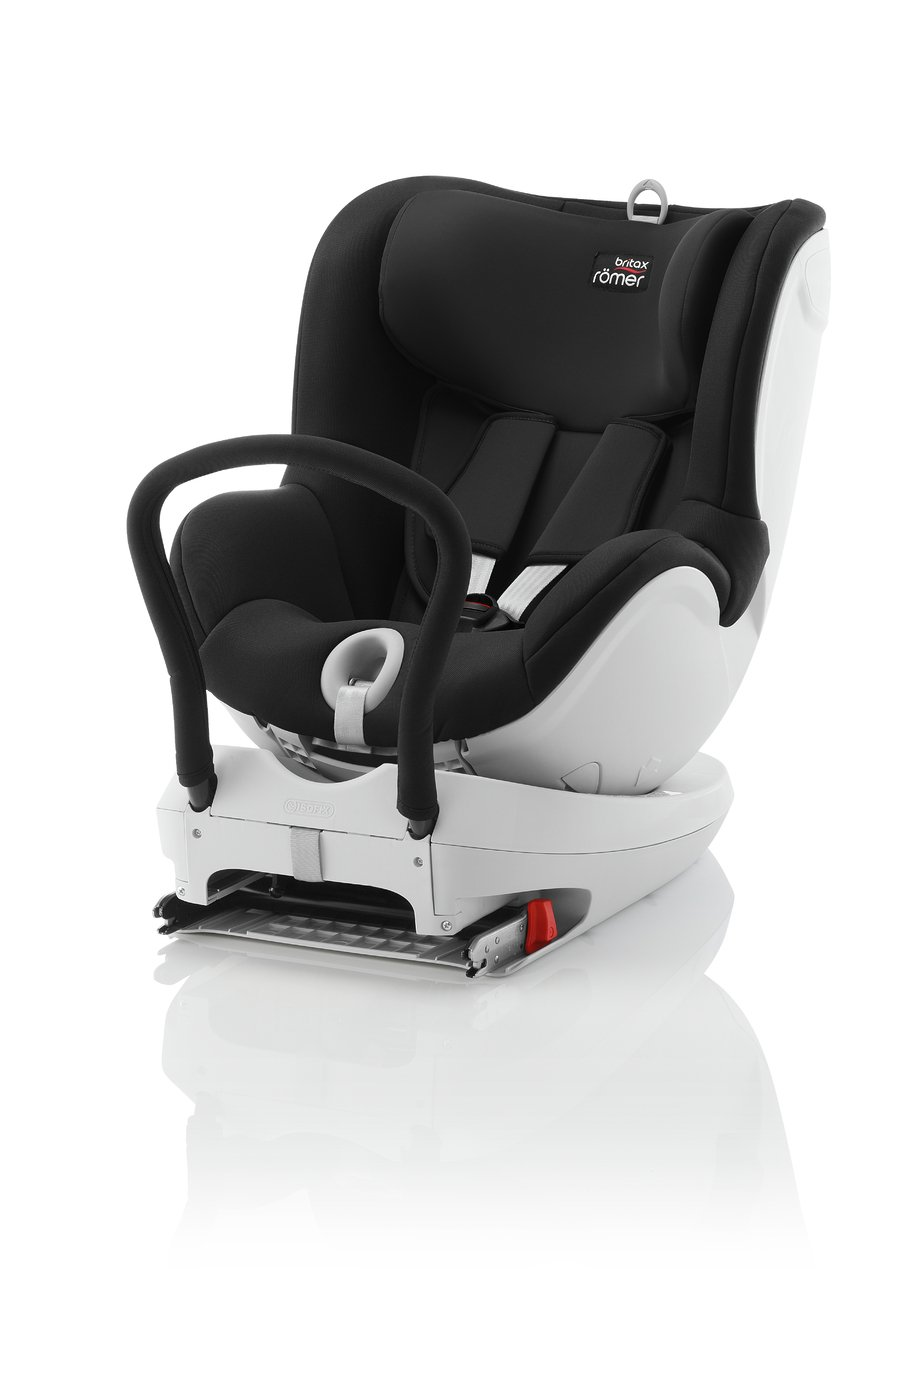 Image of Britax Romer DUALFIX Group 0+/1 Car Seat - Cosmos Black